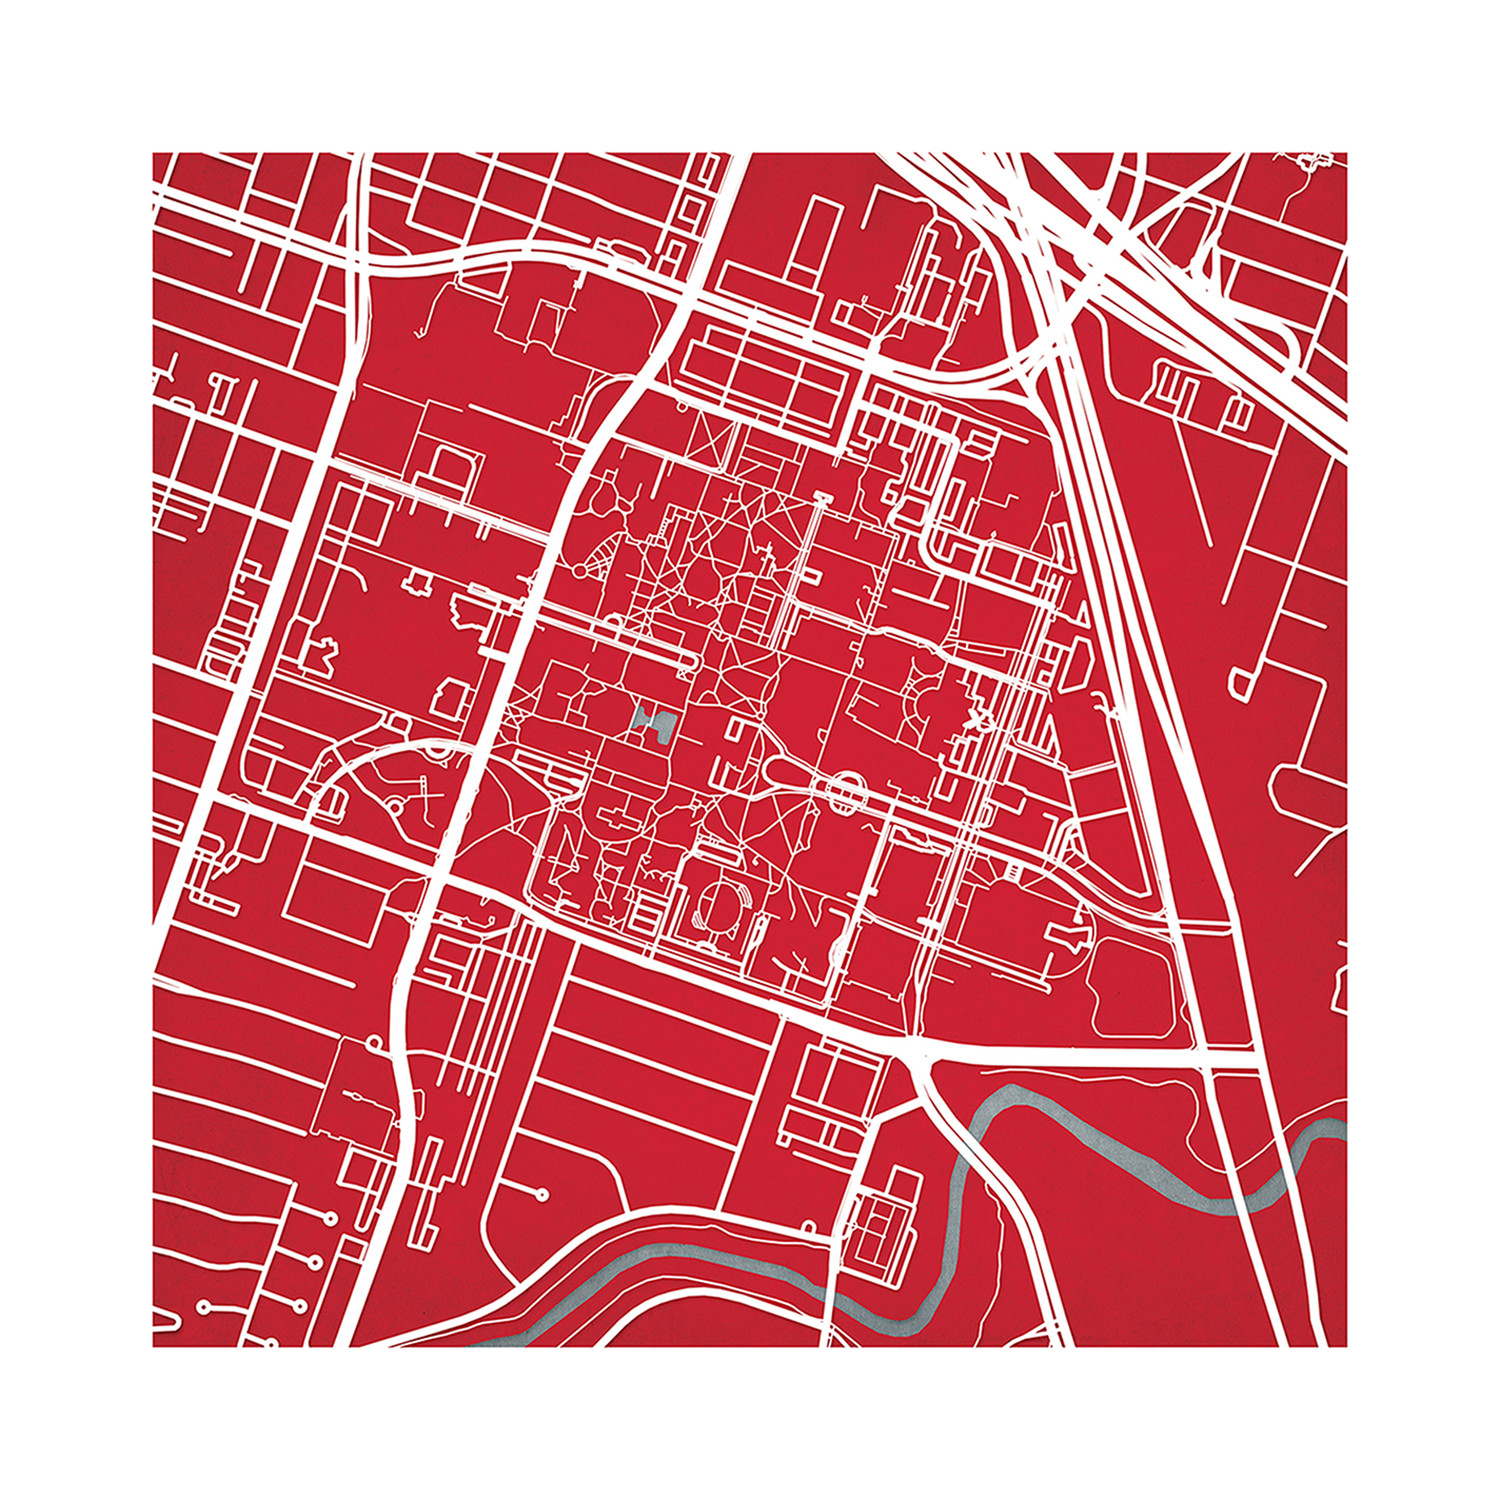 University Of Houston College Campus Maps Touch Of Modern